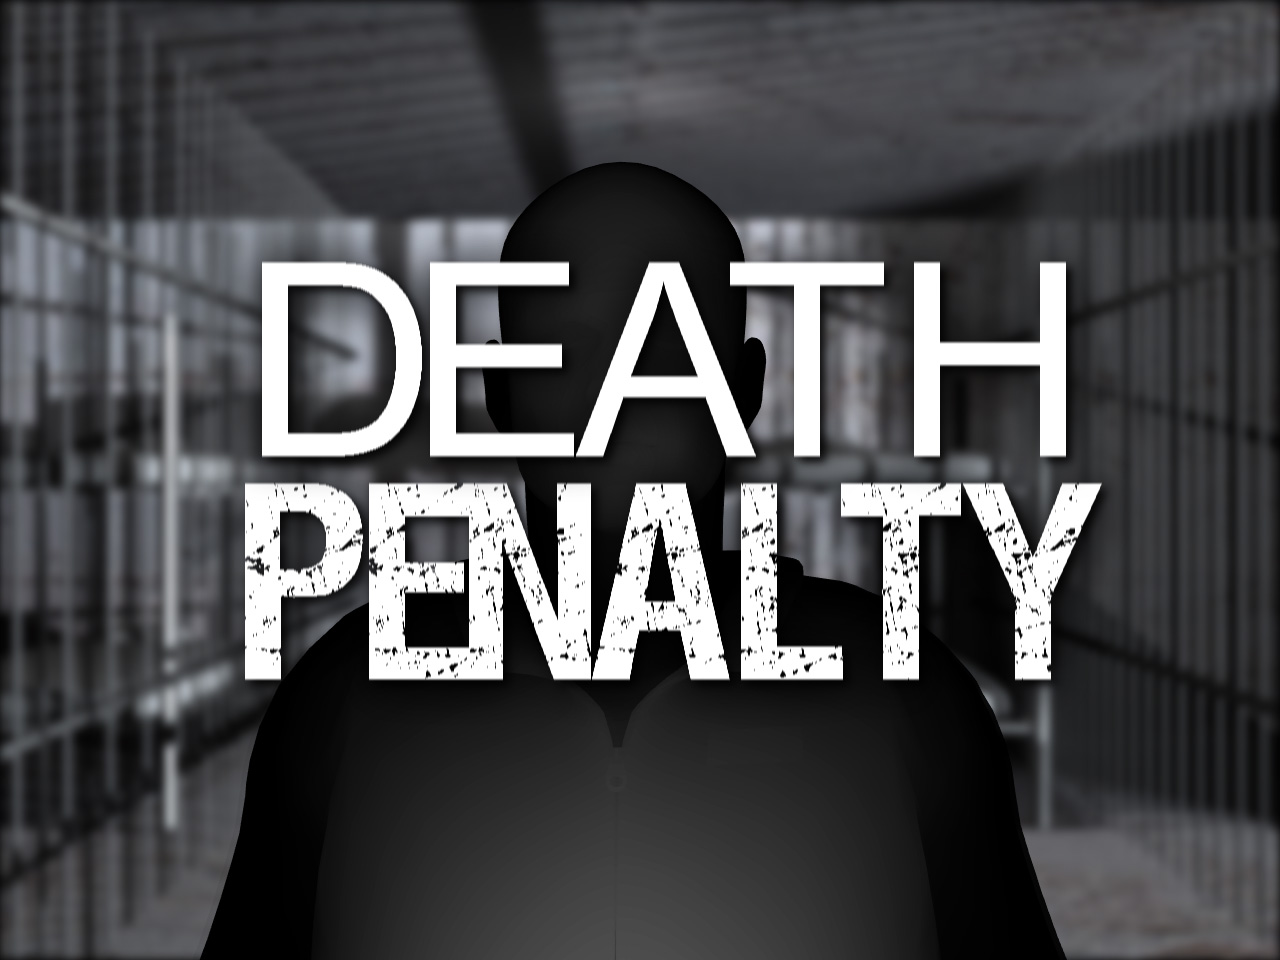 HRCSL recommends President to abolish death penalty